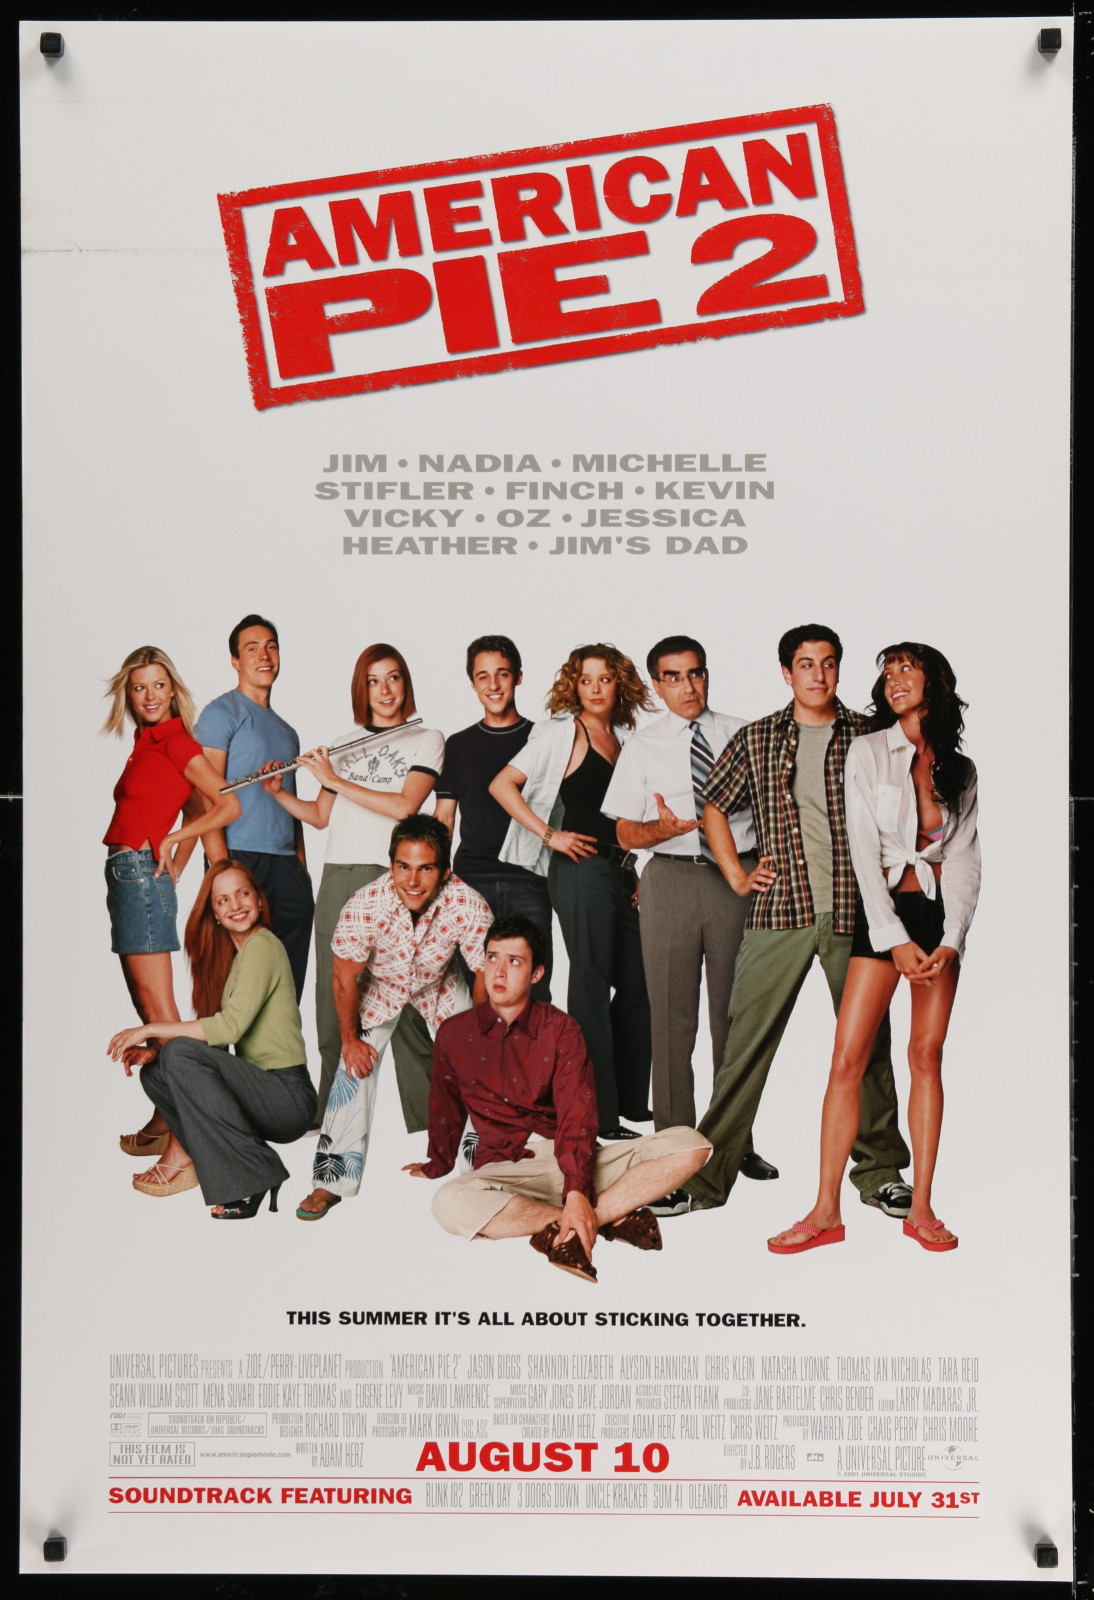 American Pie 2 2A438 A Part Of A Lot 18 Unfolded Double-Sided 27X40 Mostly Comedy One-Sheets '90S-00S Great Movie Images!